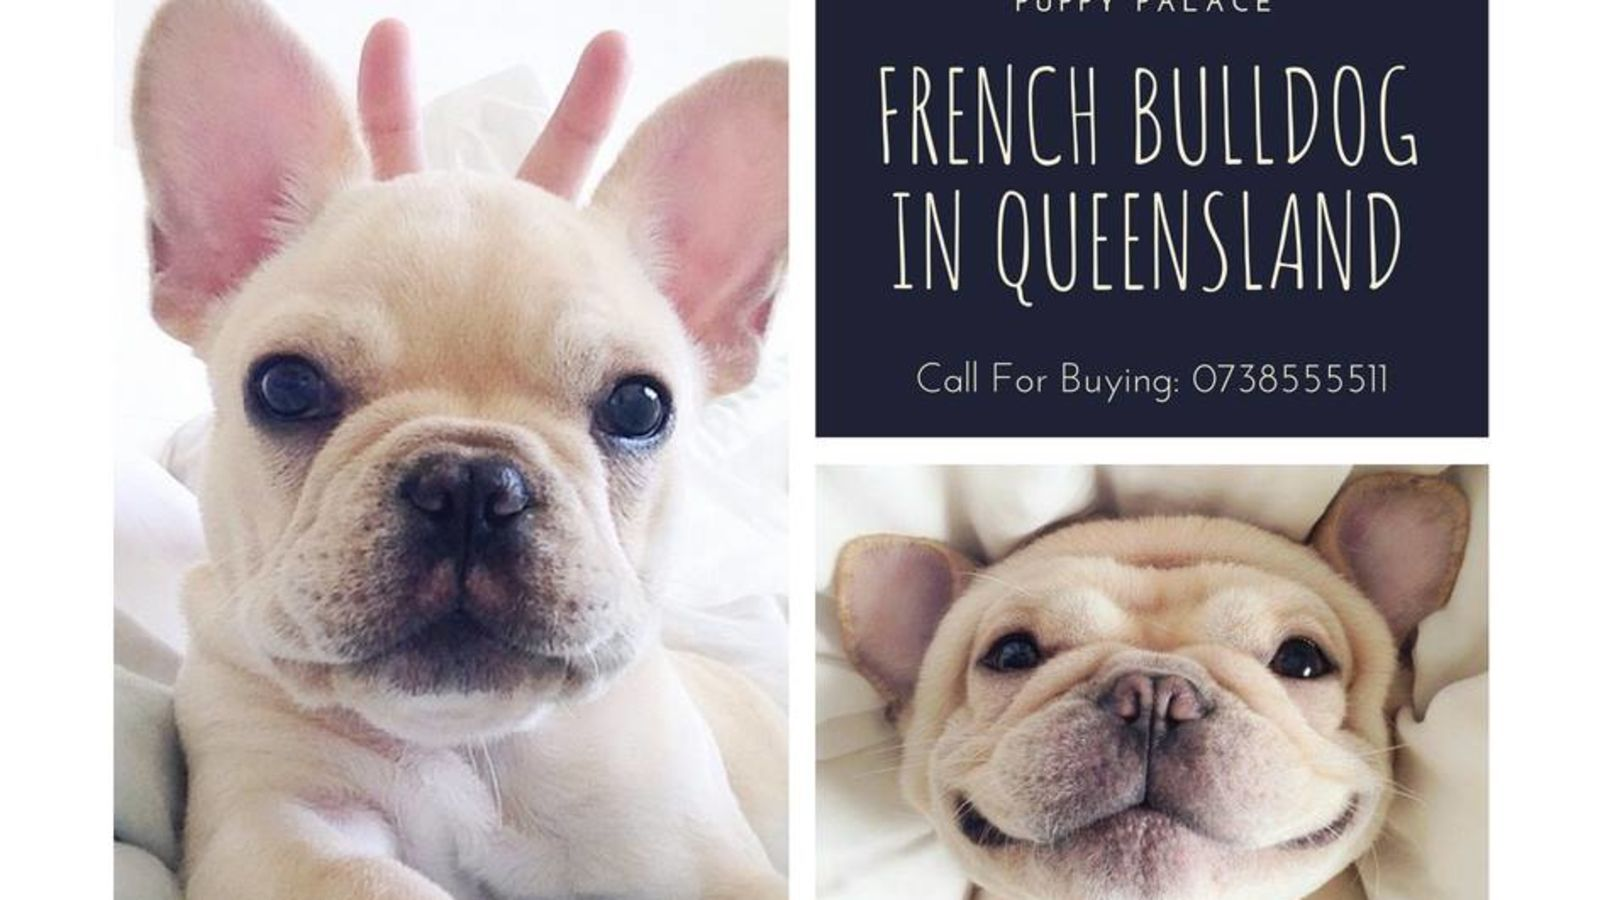 Pin By Puppy Palace On Puppy Palace Pet Shop Bulldog French